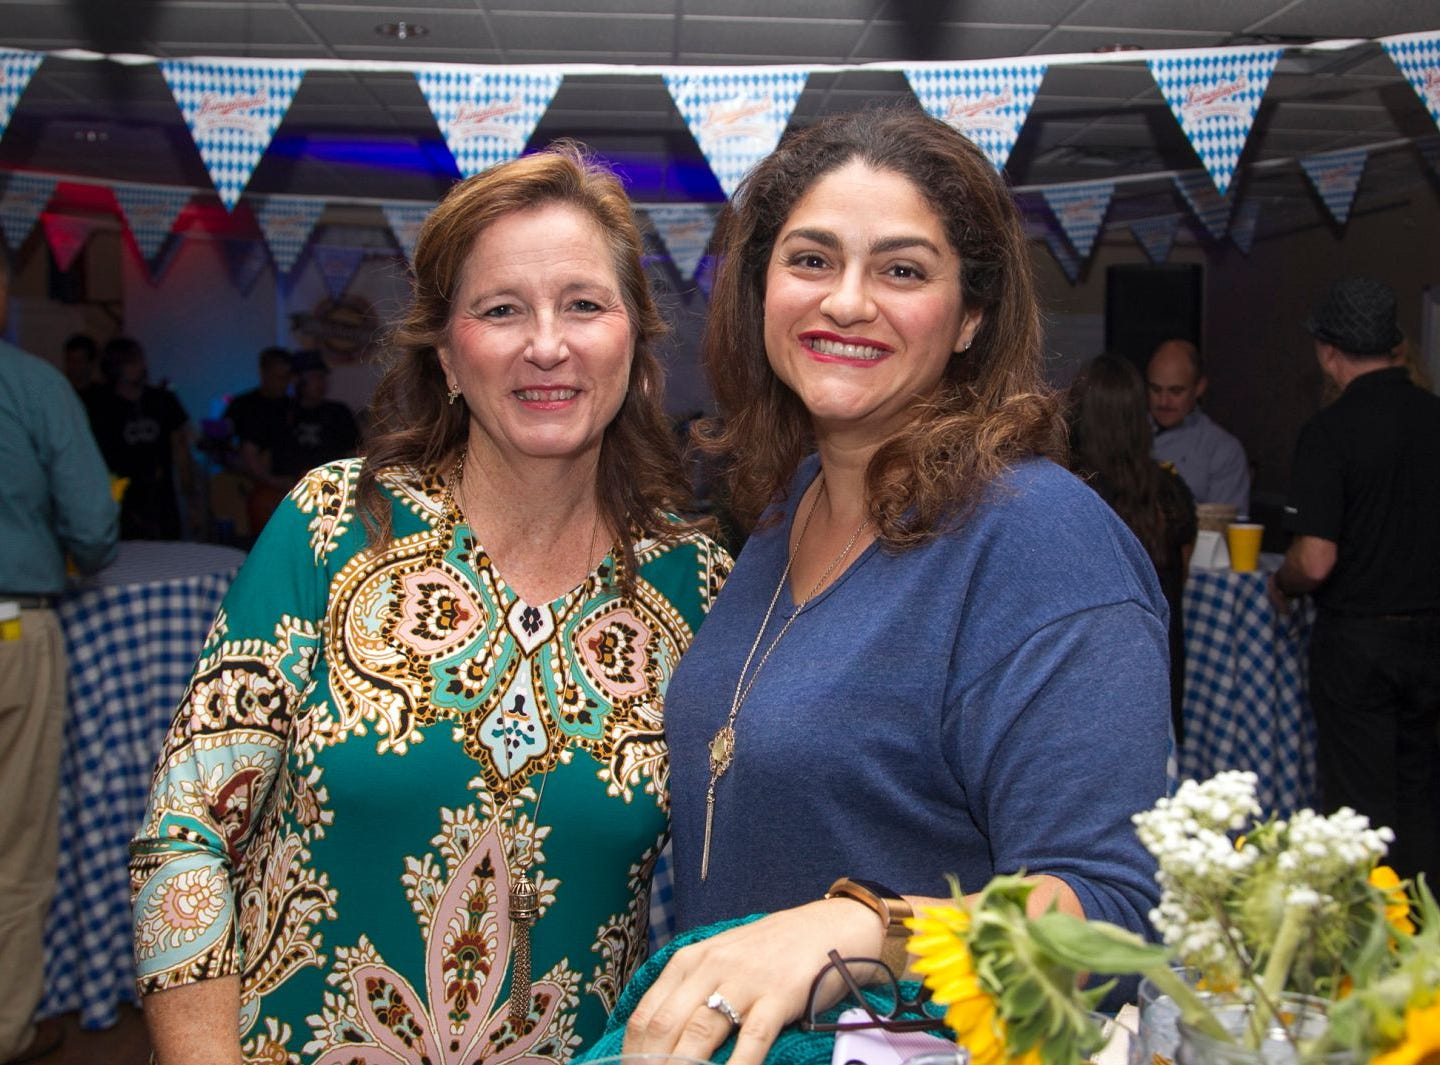 Anna Salerno and Deanne Dunne. Ridgewood Education Foundation's 2018 Oktoberfest at the Hermitage. 09/29/2018